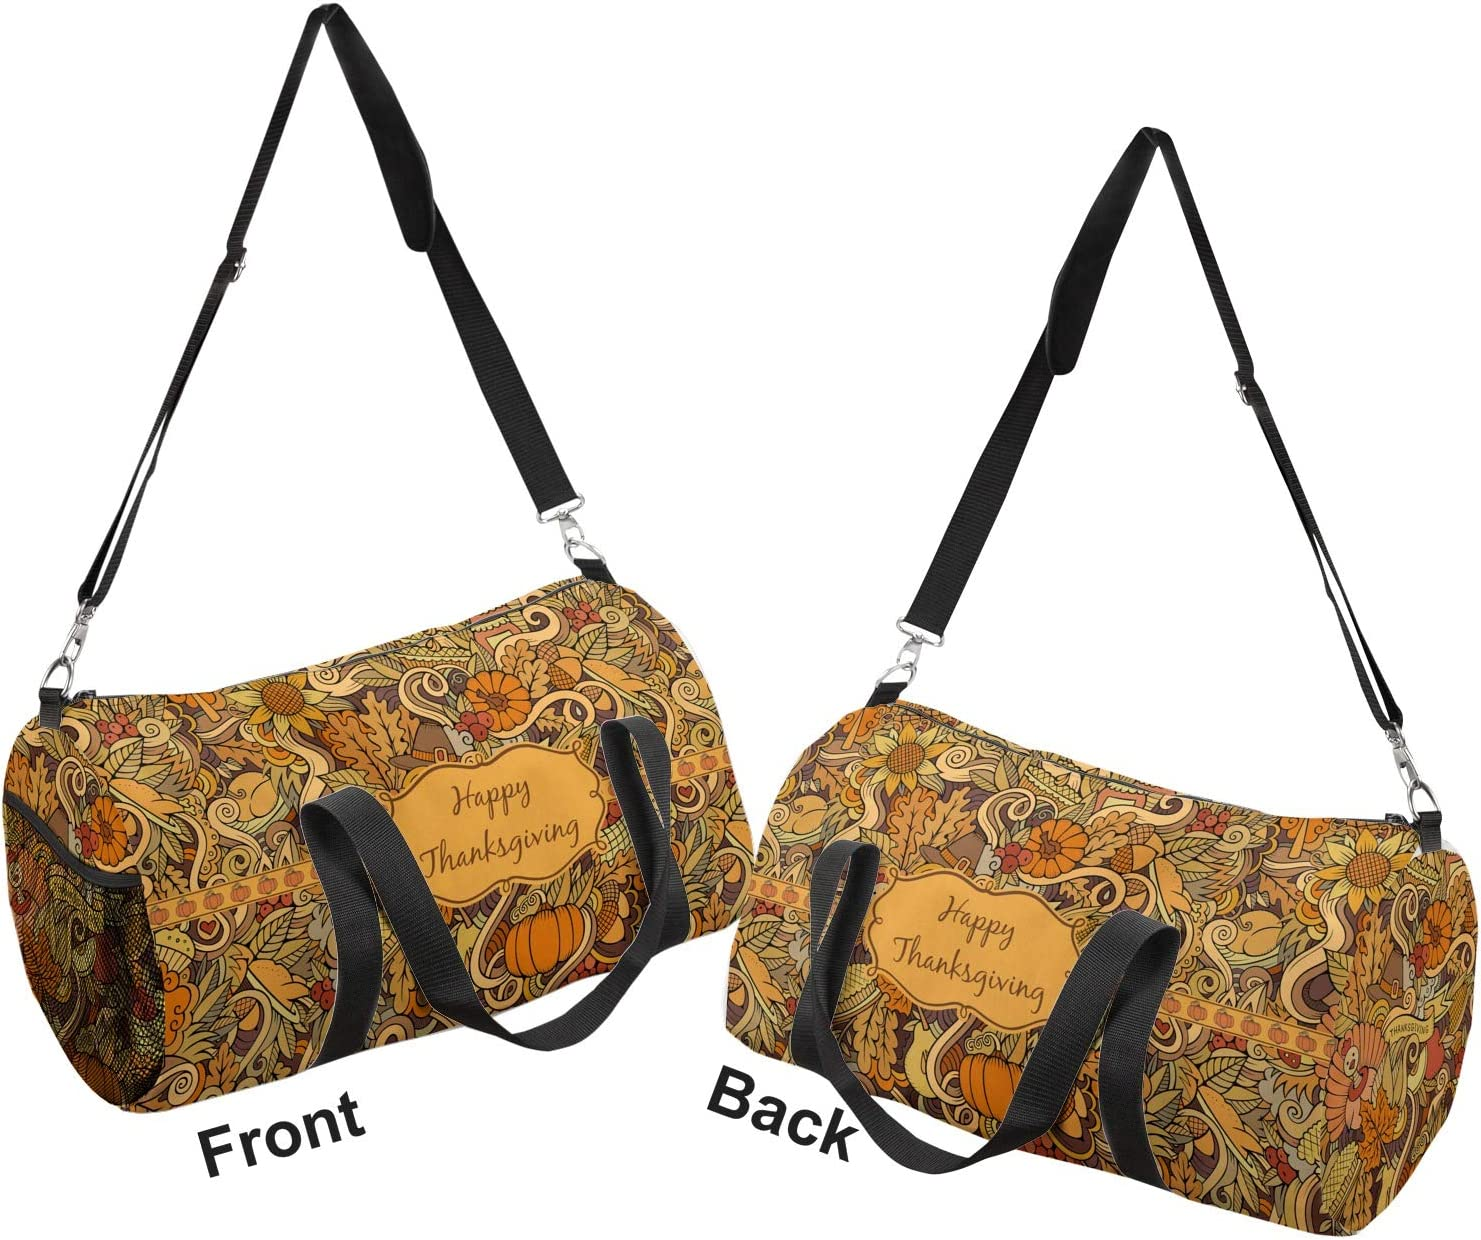 YouCustomizeIt Thanksgiving Duffel Bag Personalized